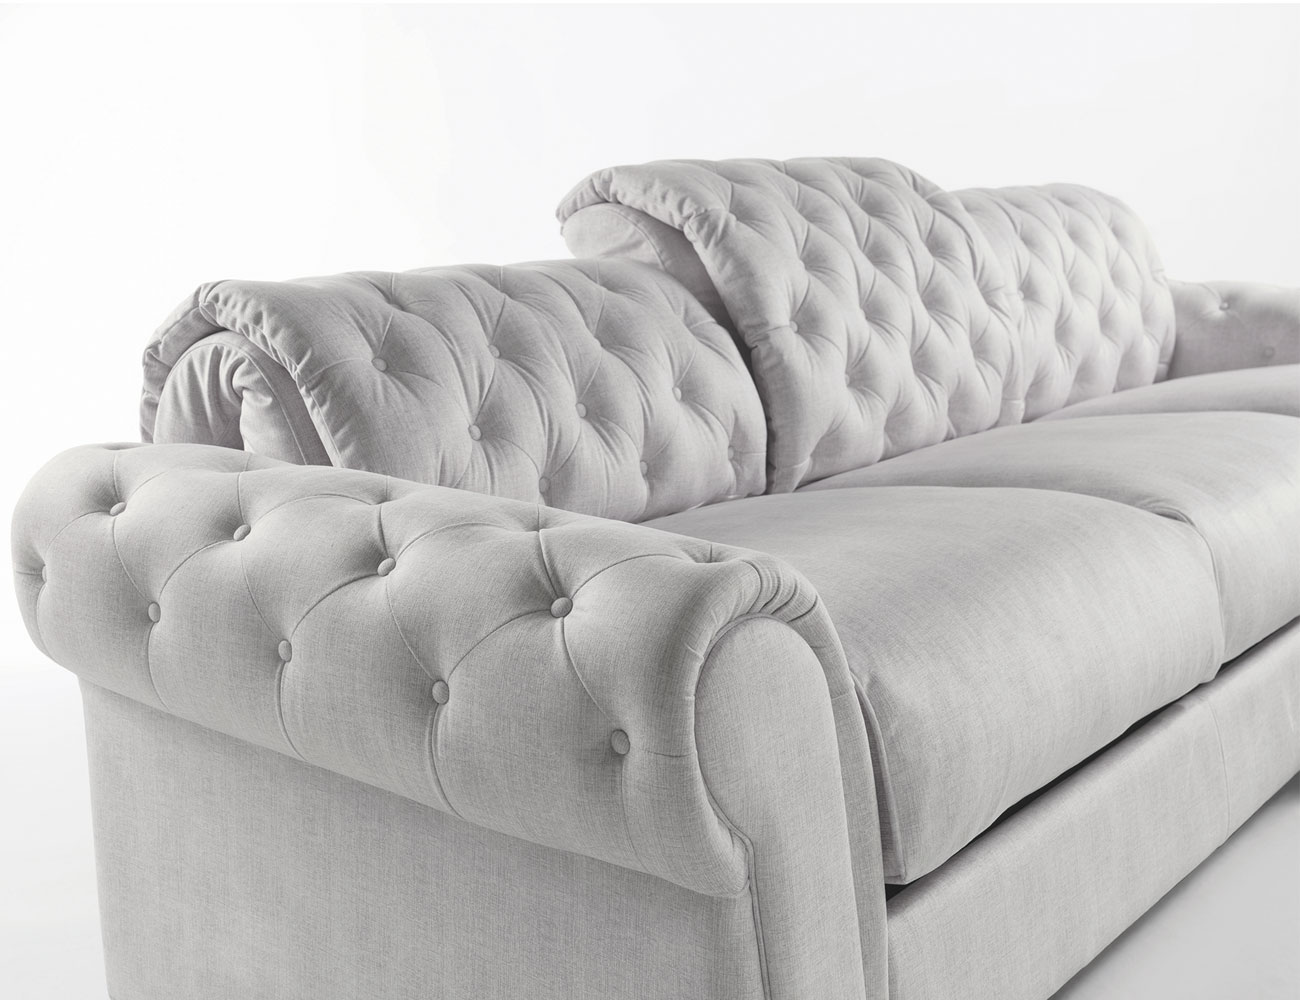 Sofa chaiselongue gran lujo decorativo capitone blanco tela 130